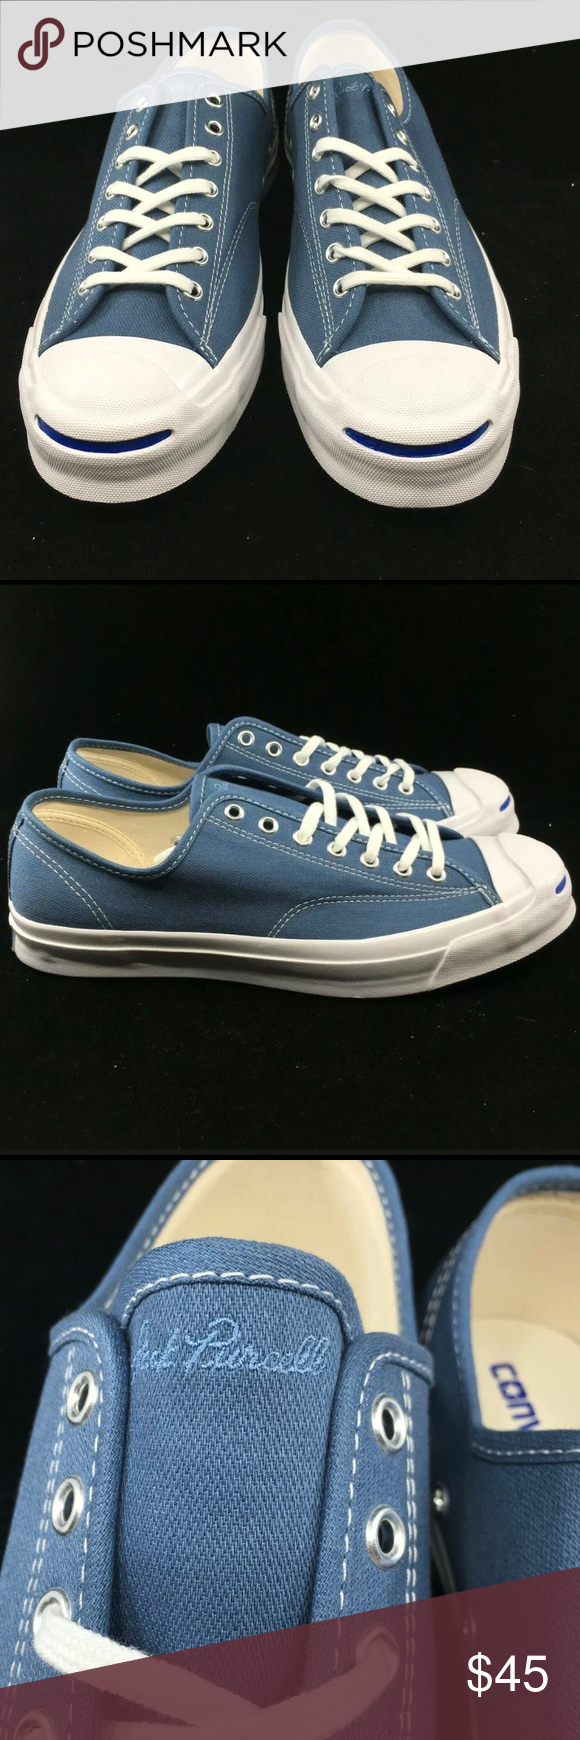 CONVERSE JACK PURCELL SIGNATURE OX BLUE